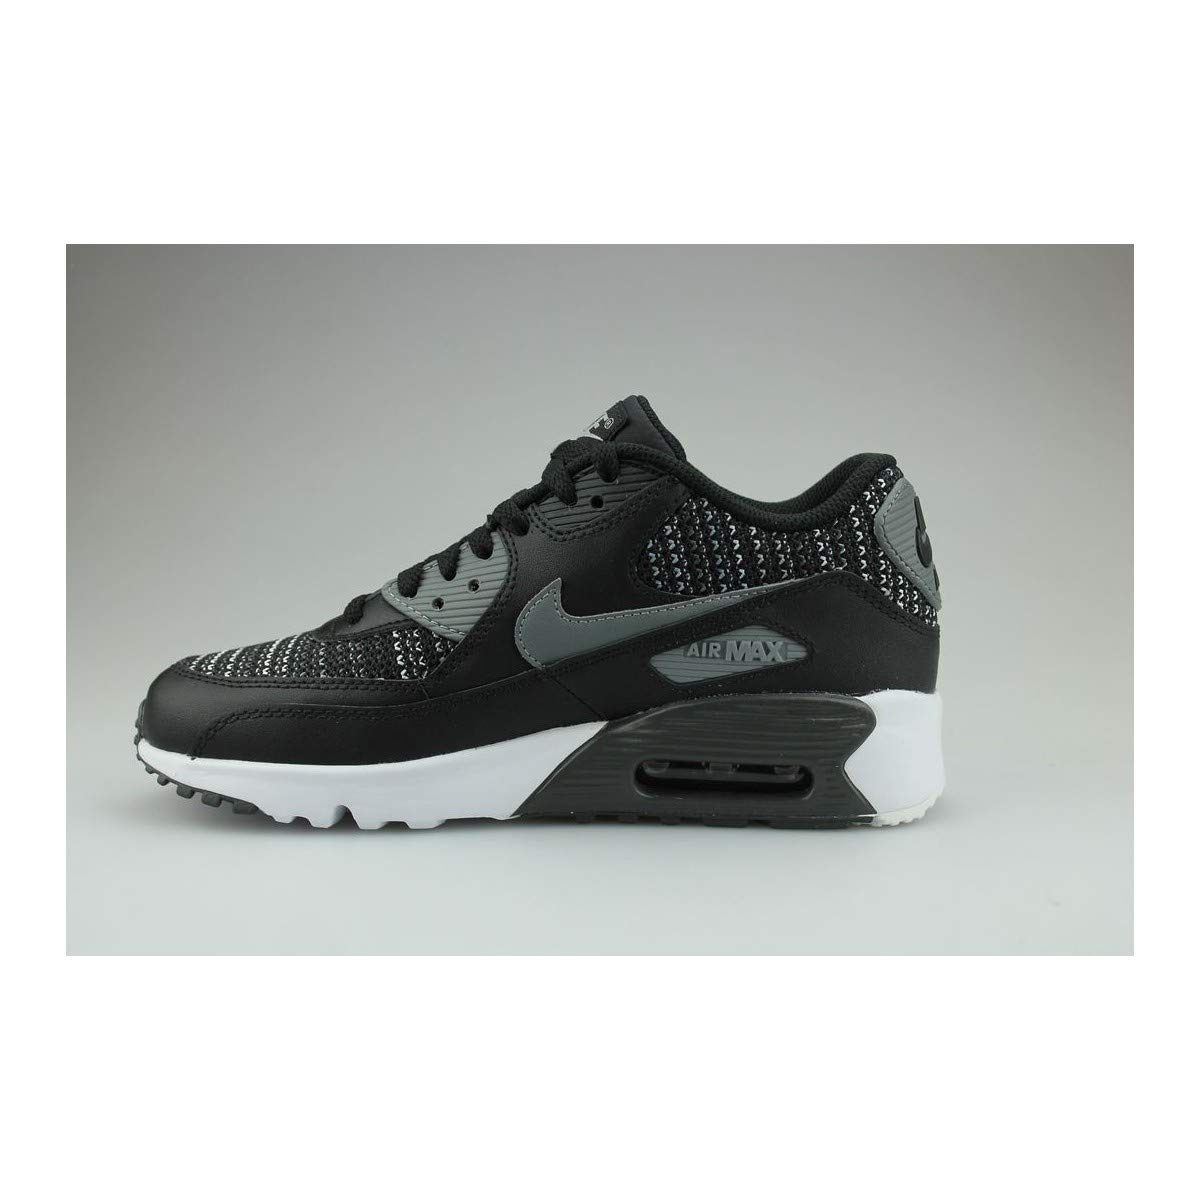 quality design 416b2 f45e6 Nike Air Max 90 Mesh Se (GS), Sneakers Basses Homme, Multicolore  (Black Cool Anthracite Wolf Grey 001), 39 EU  Amazon.fr  Chaussures et Sacs